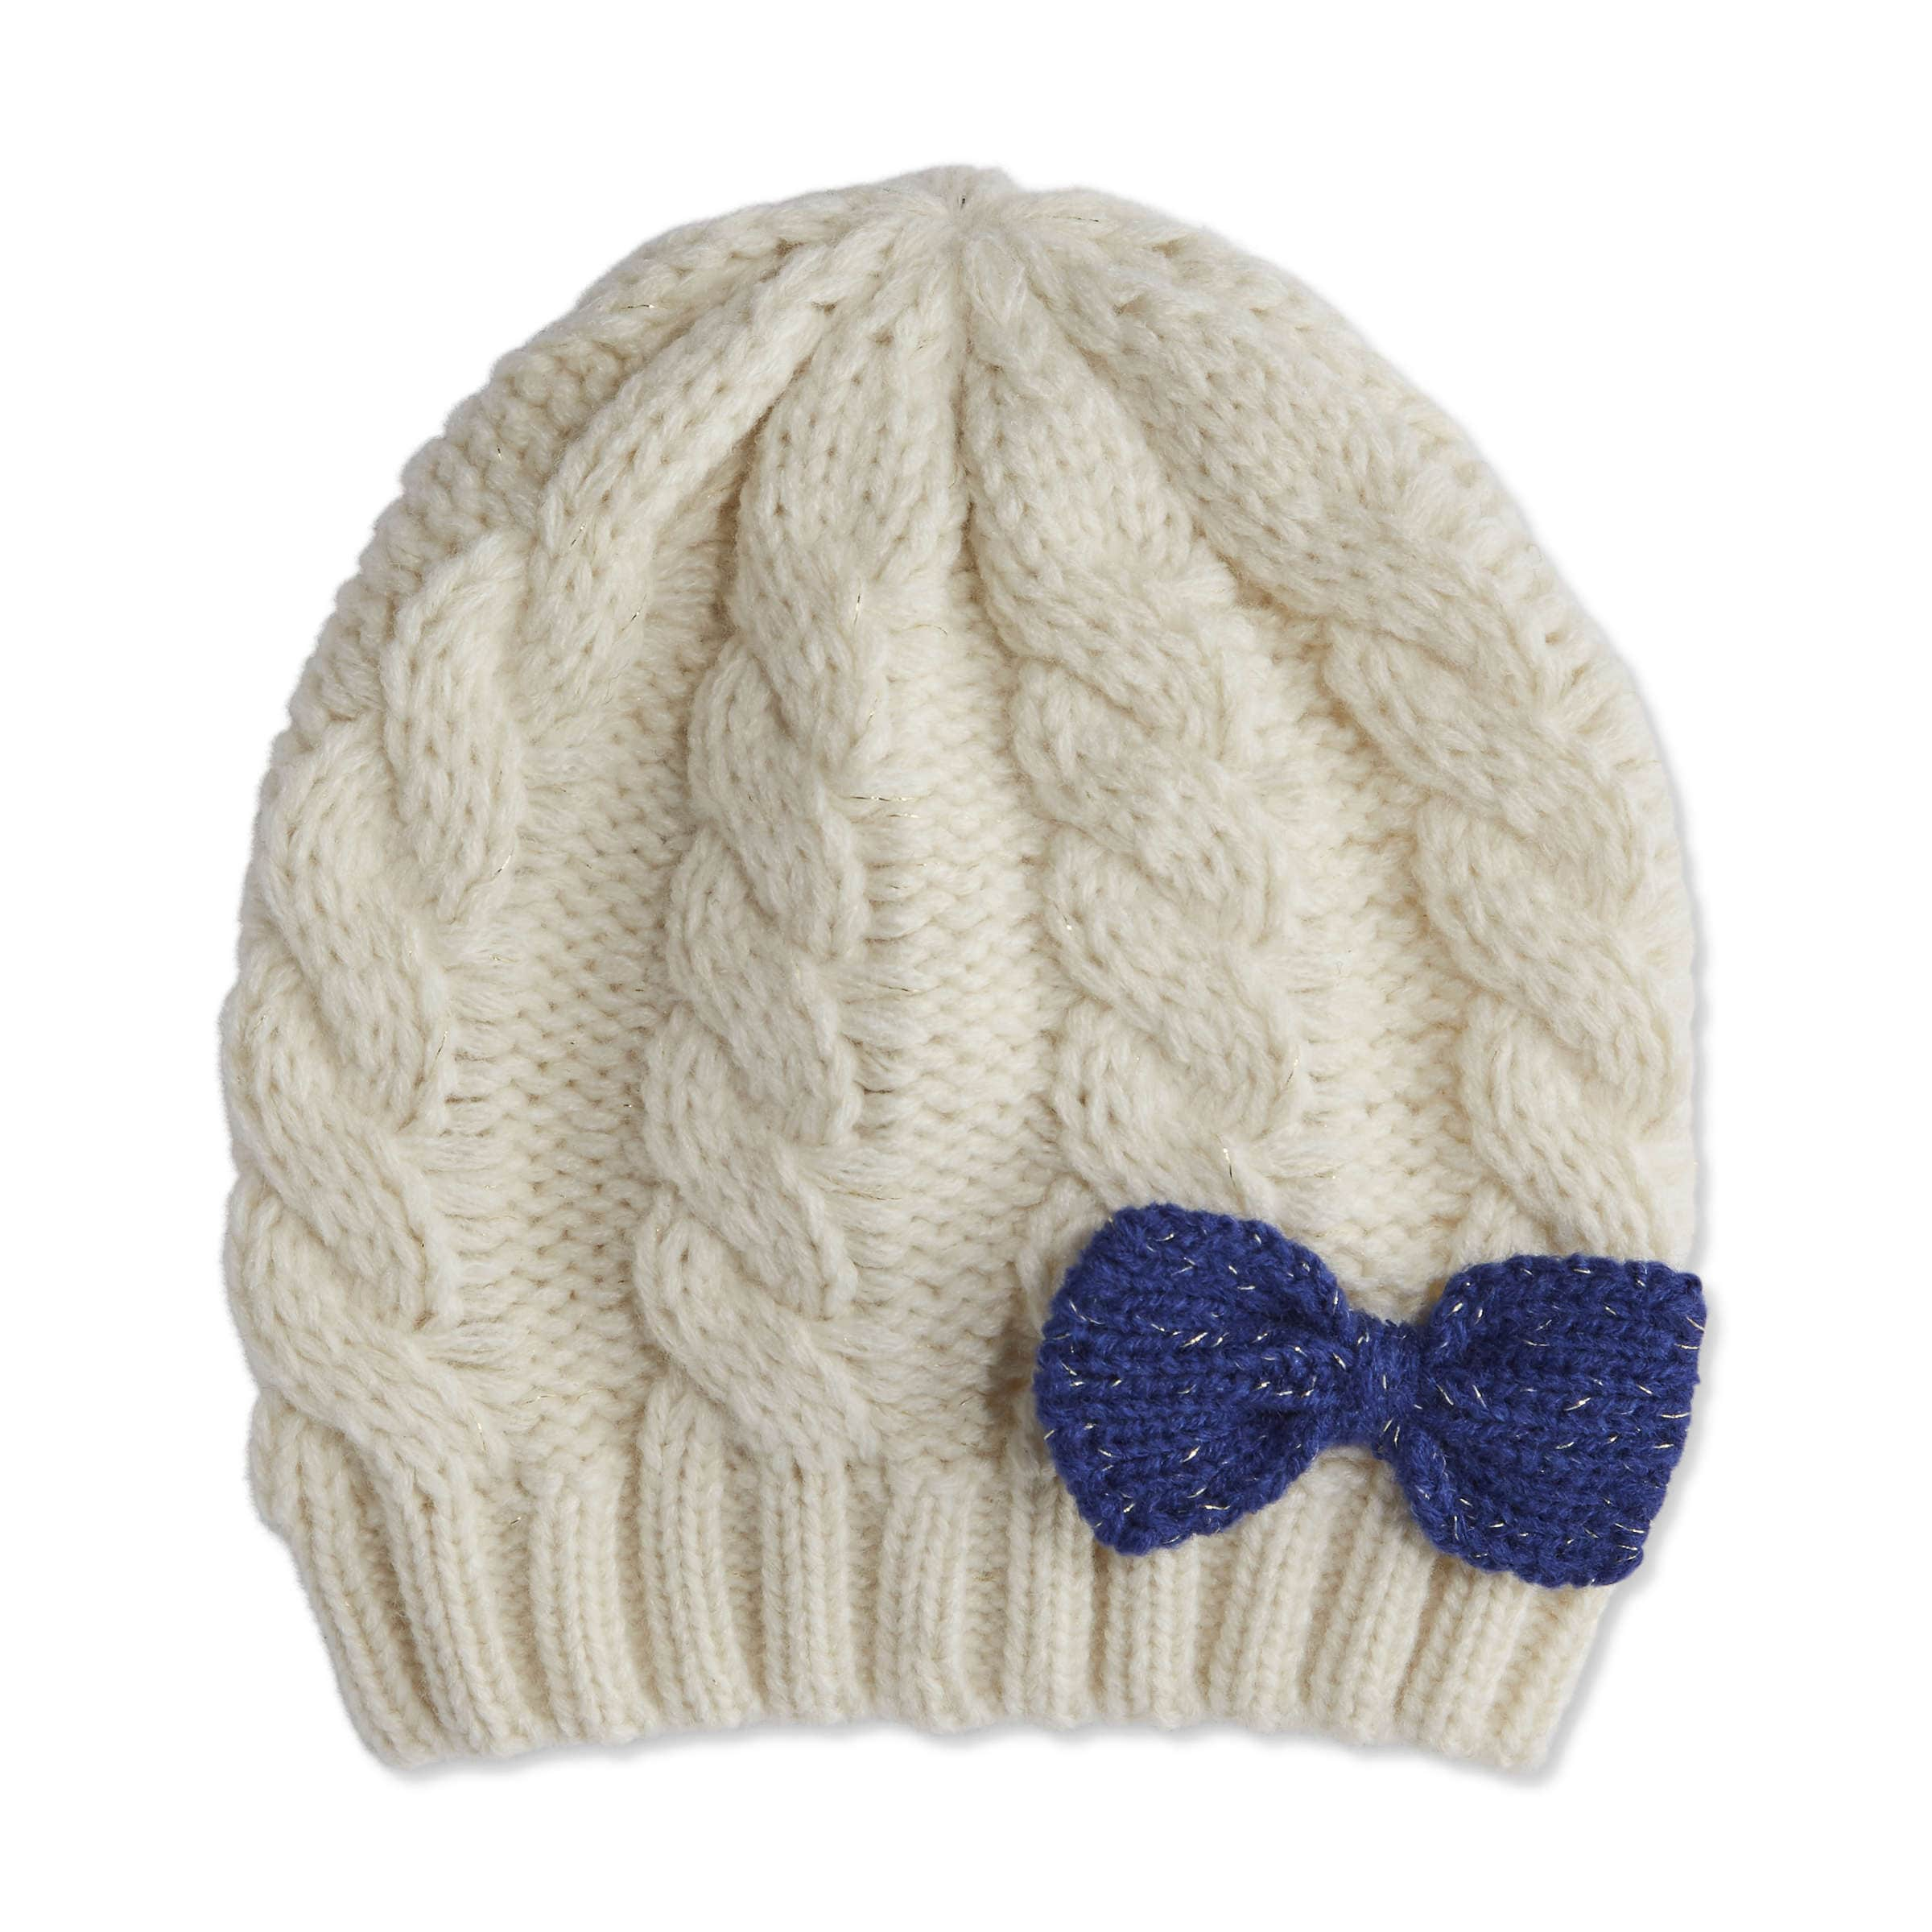 Baby Girls  Bow Cable Knit Beanie in Ecru from Joe Fresh 29a29237347